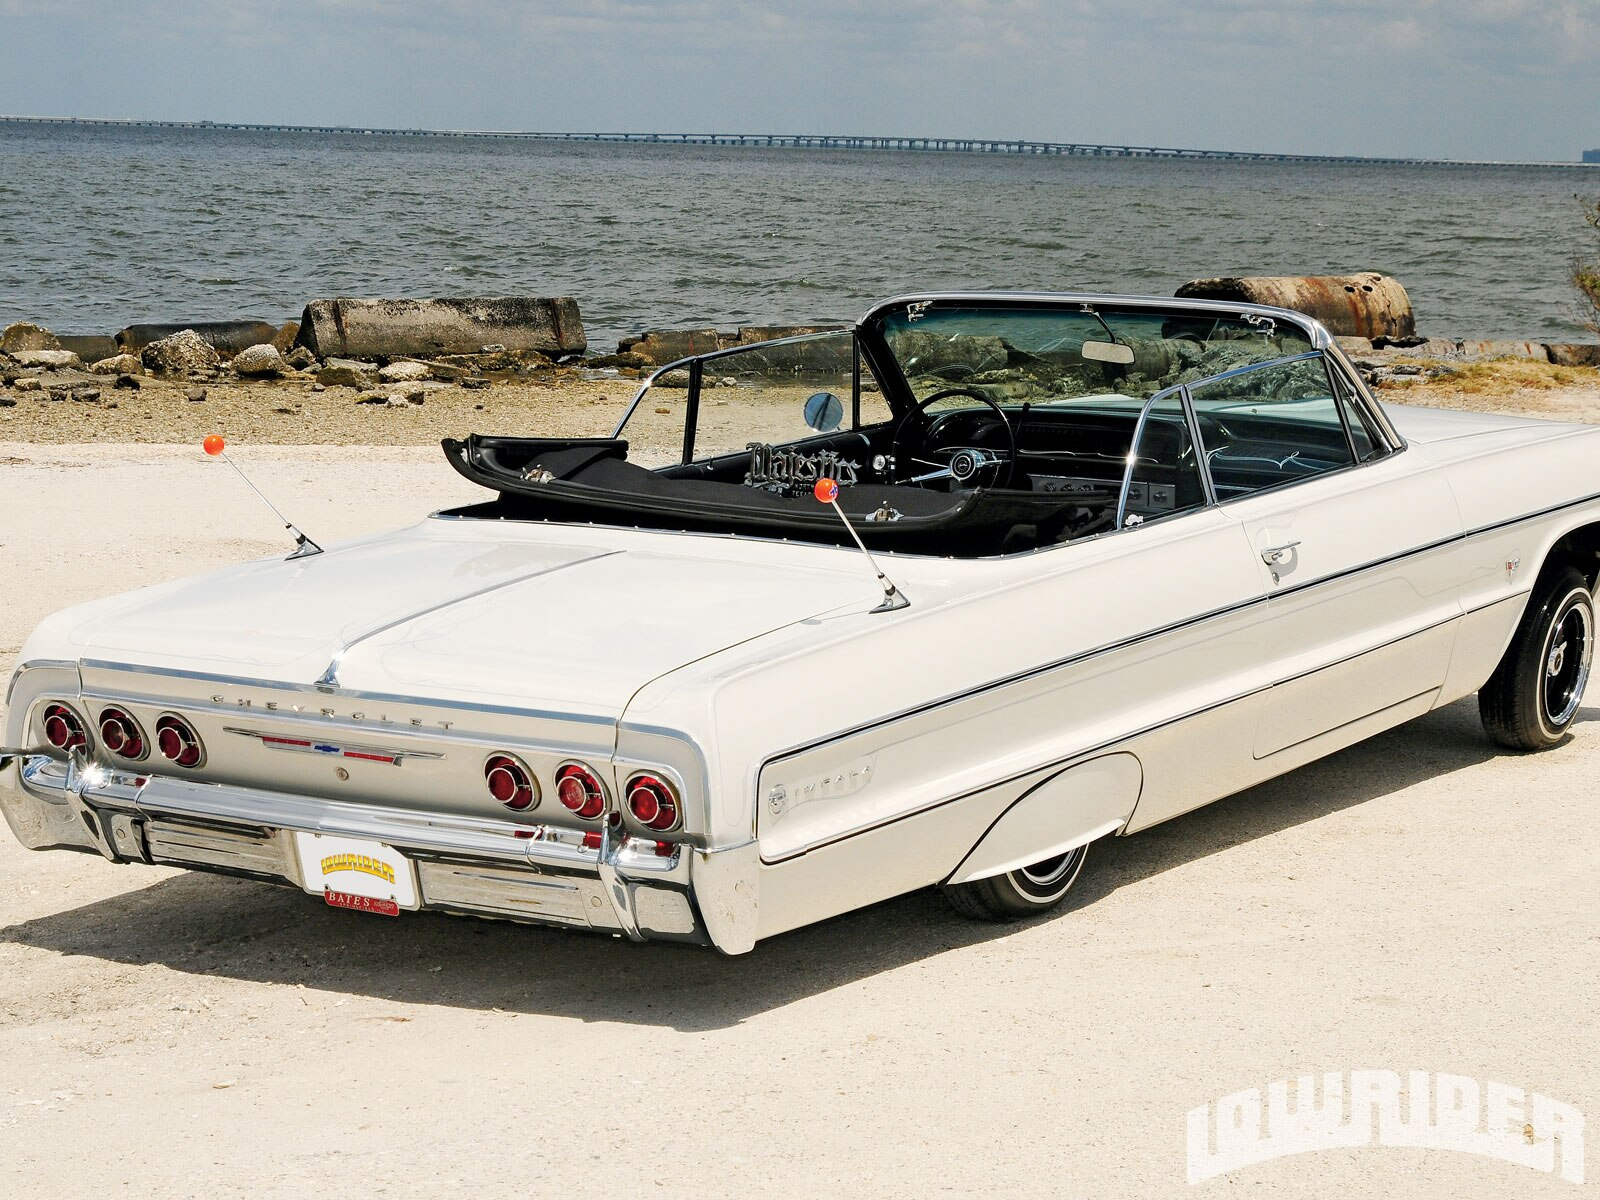 lrmp-1011-04-o-1964-chevrolet-impala-convertible-rear-view1